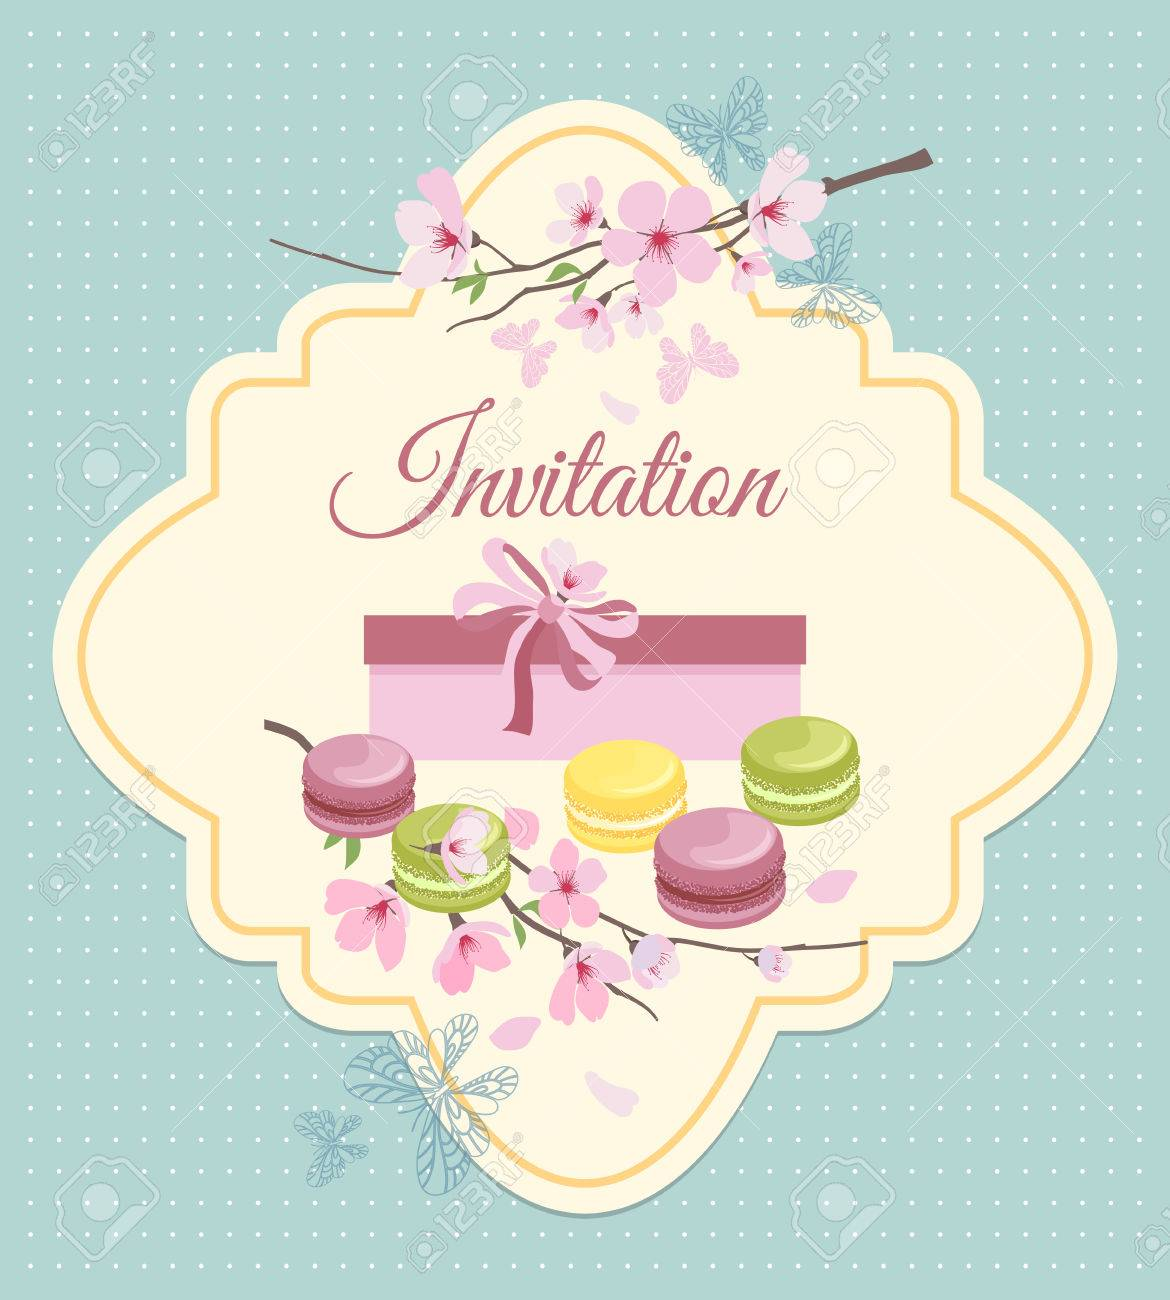 Invitation card to tea party with flowers and french macaroons invitation card to tea party with flowers and french macaroons in vintage nostalgic style sweet stopboris Image collections